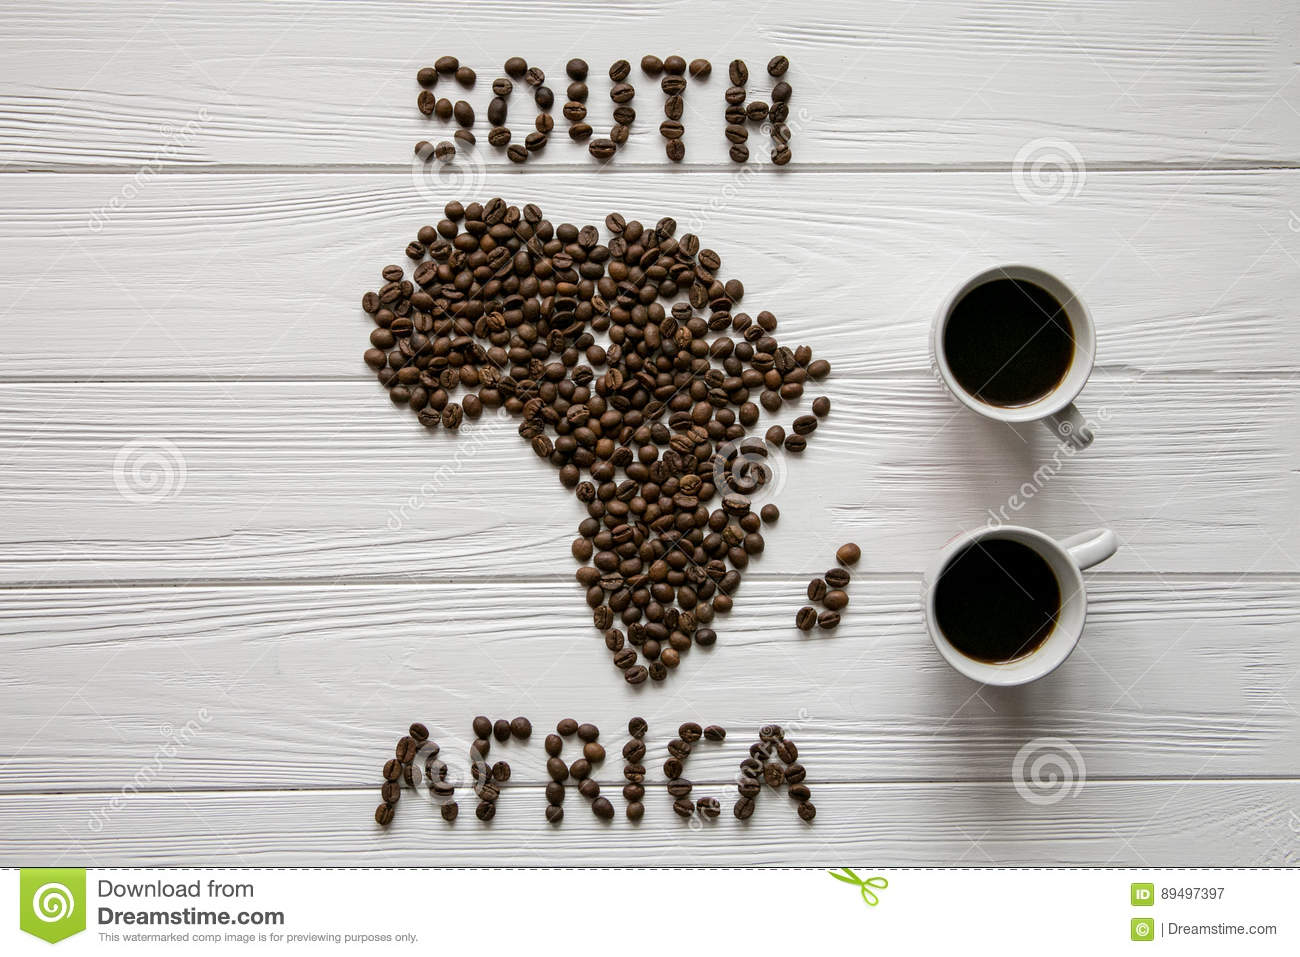 Map Of The South Africa Made Of Roasted Coffee Beans Laying On White Kona Map Of Africa on map of ballast point, map of honolulu, map of southern tier, map of kiholo bay, map of oahu, map of kauai marriott resort, map of redline, map of west palm beach airport, map of holualoa, map of tiki, map of kunia, map of kahului, map of kohala coast, map of hilo, map of coral baja, map of makawao, map of hanalei, map of hawaii, map of scott, map of maui,